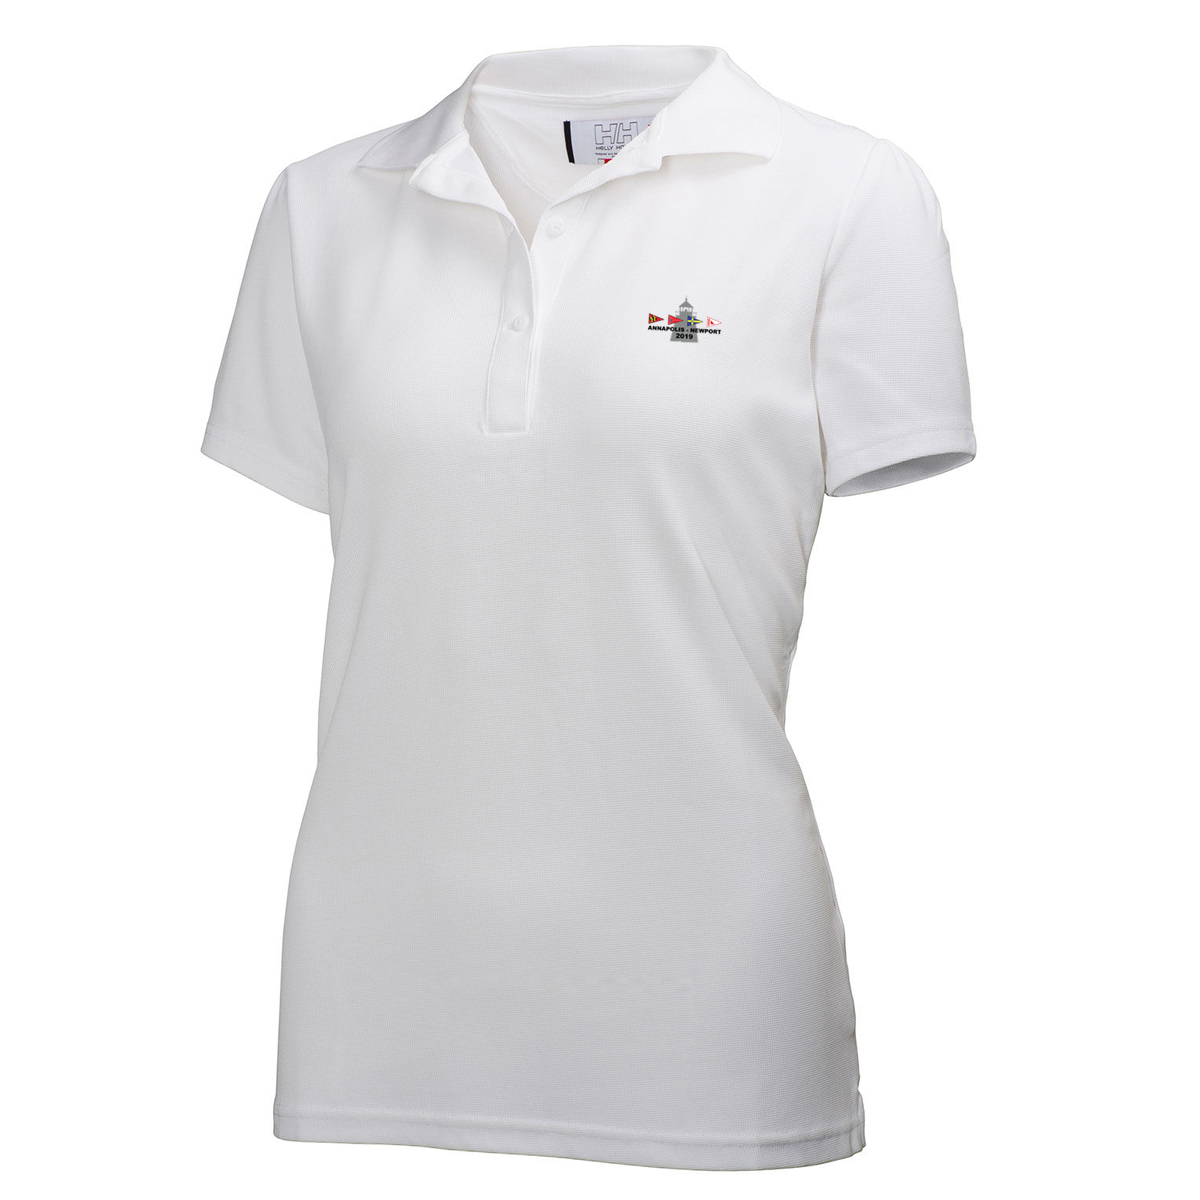 A2N19- WOMEN'S HELLY HANSEN TECH CREW POLO